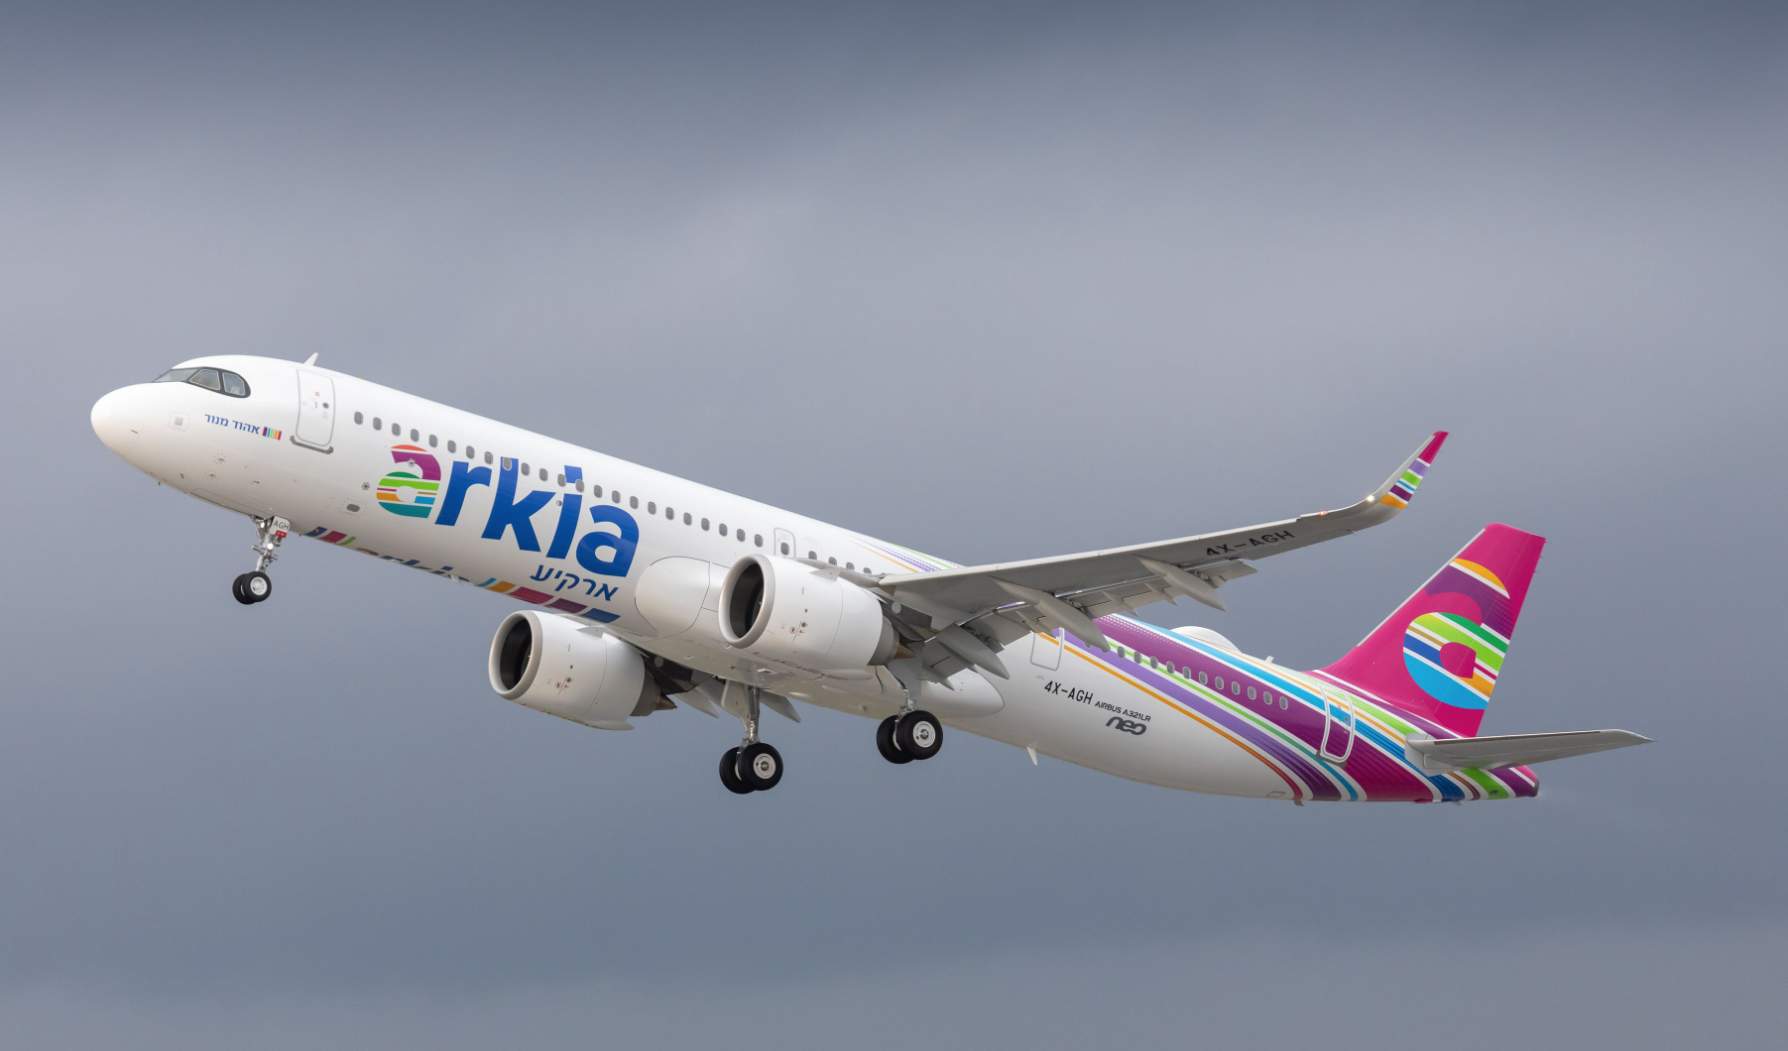 Israeli airline Arkia offers $149 fare for flights to Dubai from January 3 - News